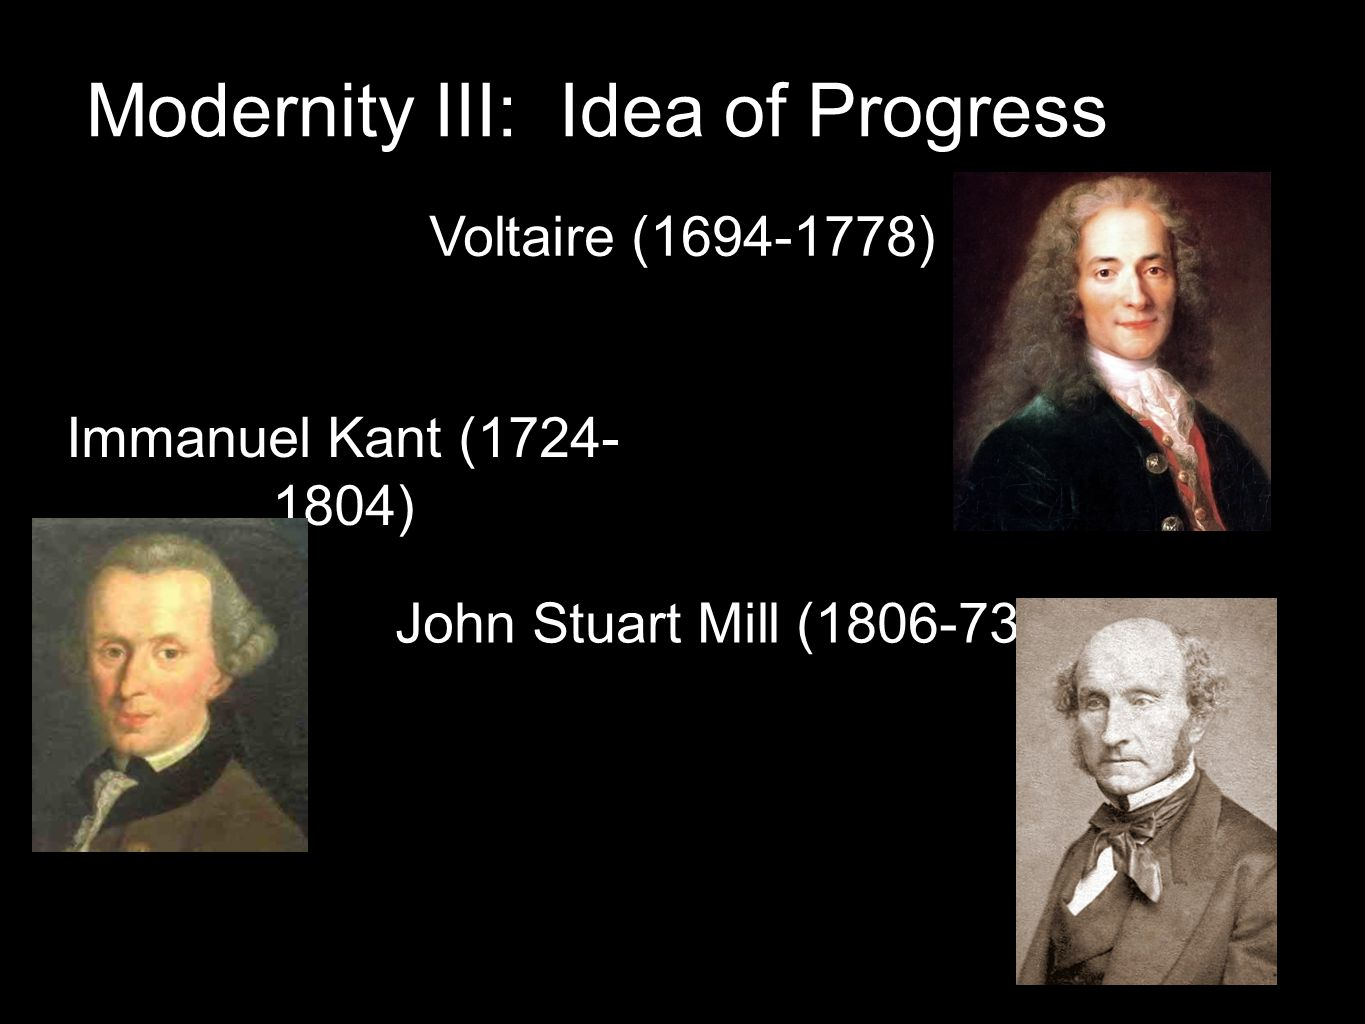 Modernity III: Idea of Progress Voltaire (1694-1778) Immanuel Kant (1724- 1804) John Stuart Mill (1806-73)